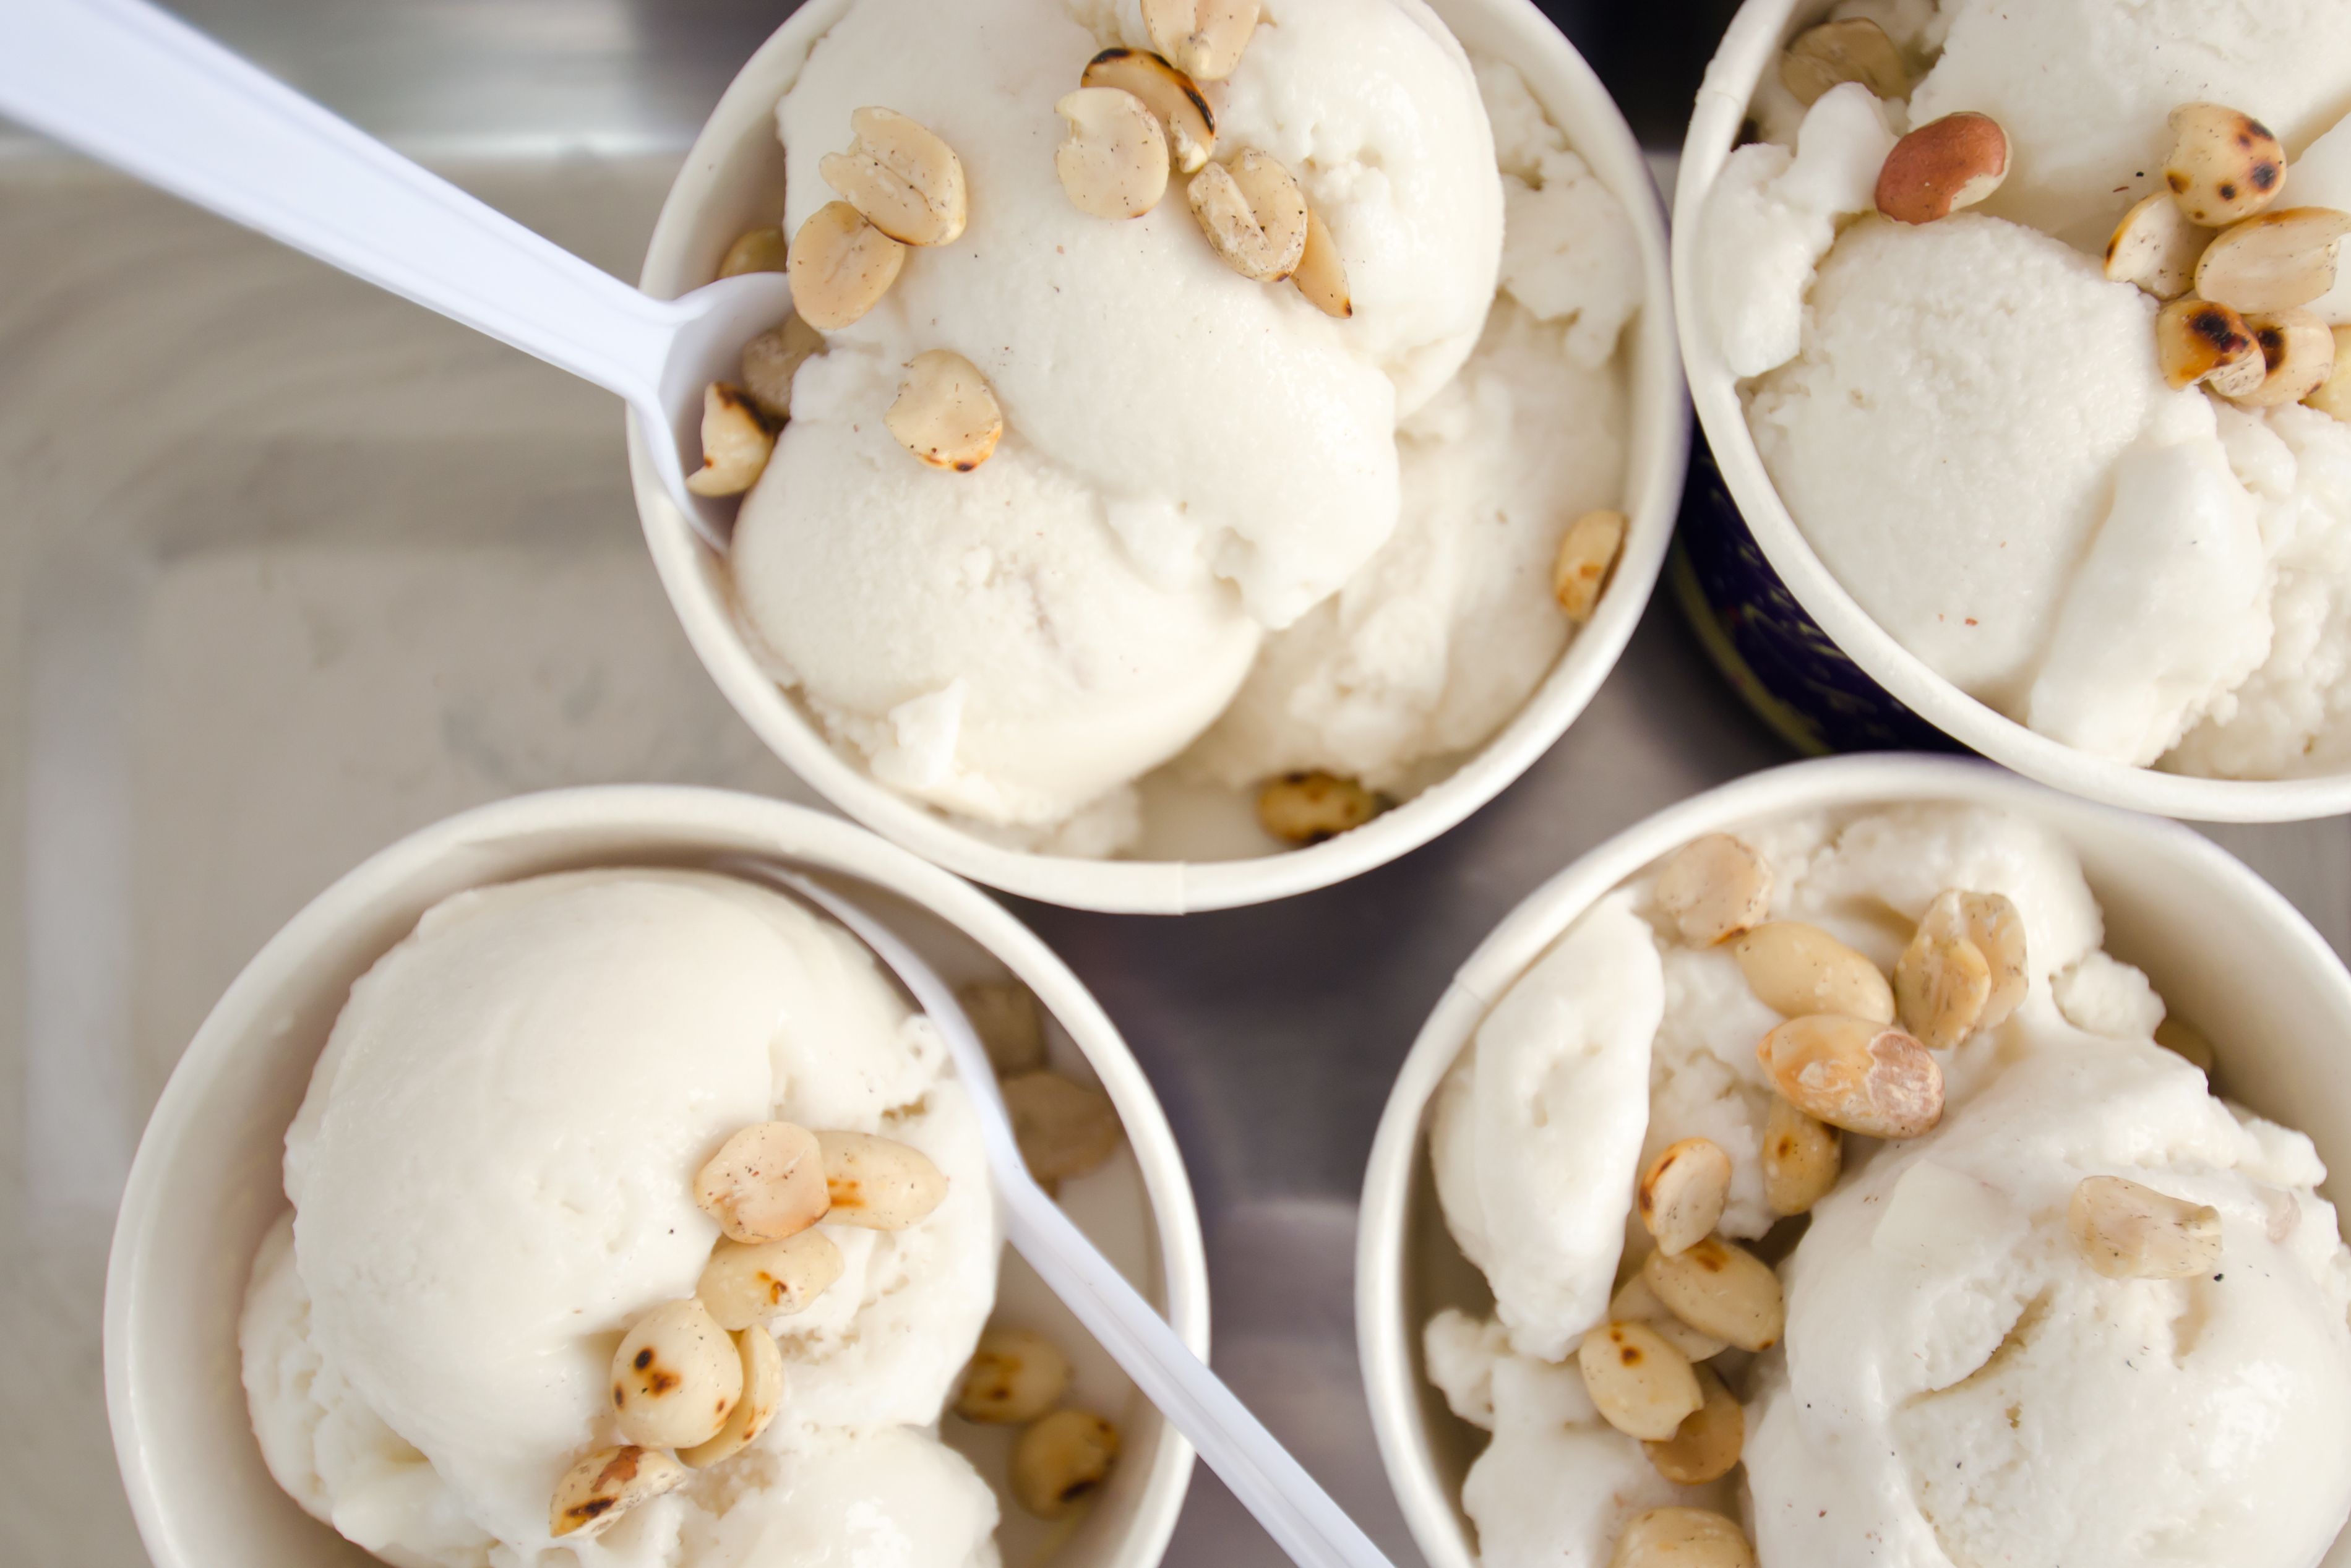 Whats Healthier: Frozen Yogurt Or Coconut Milk Ice Cream